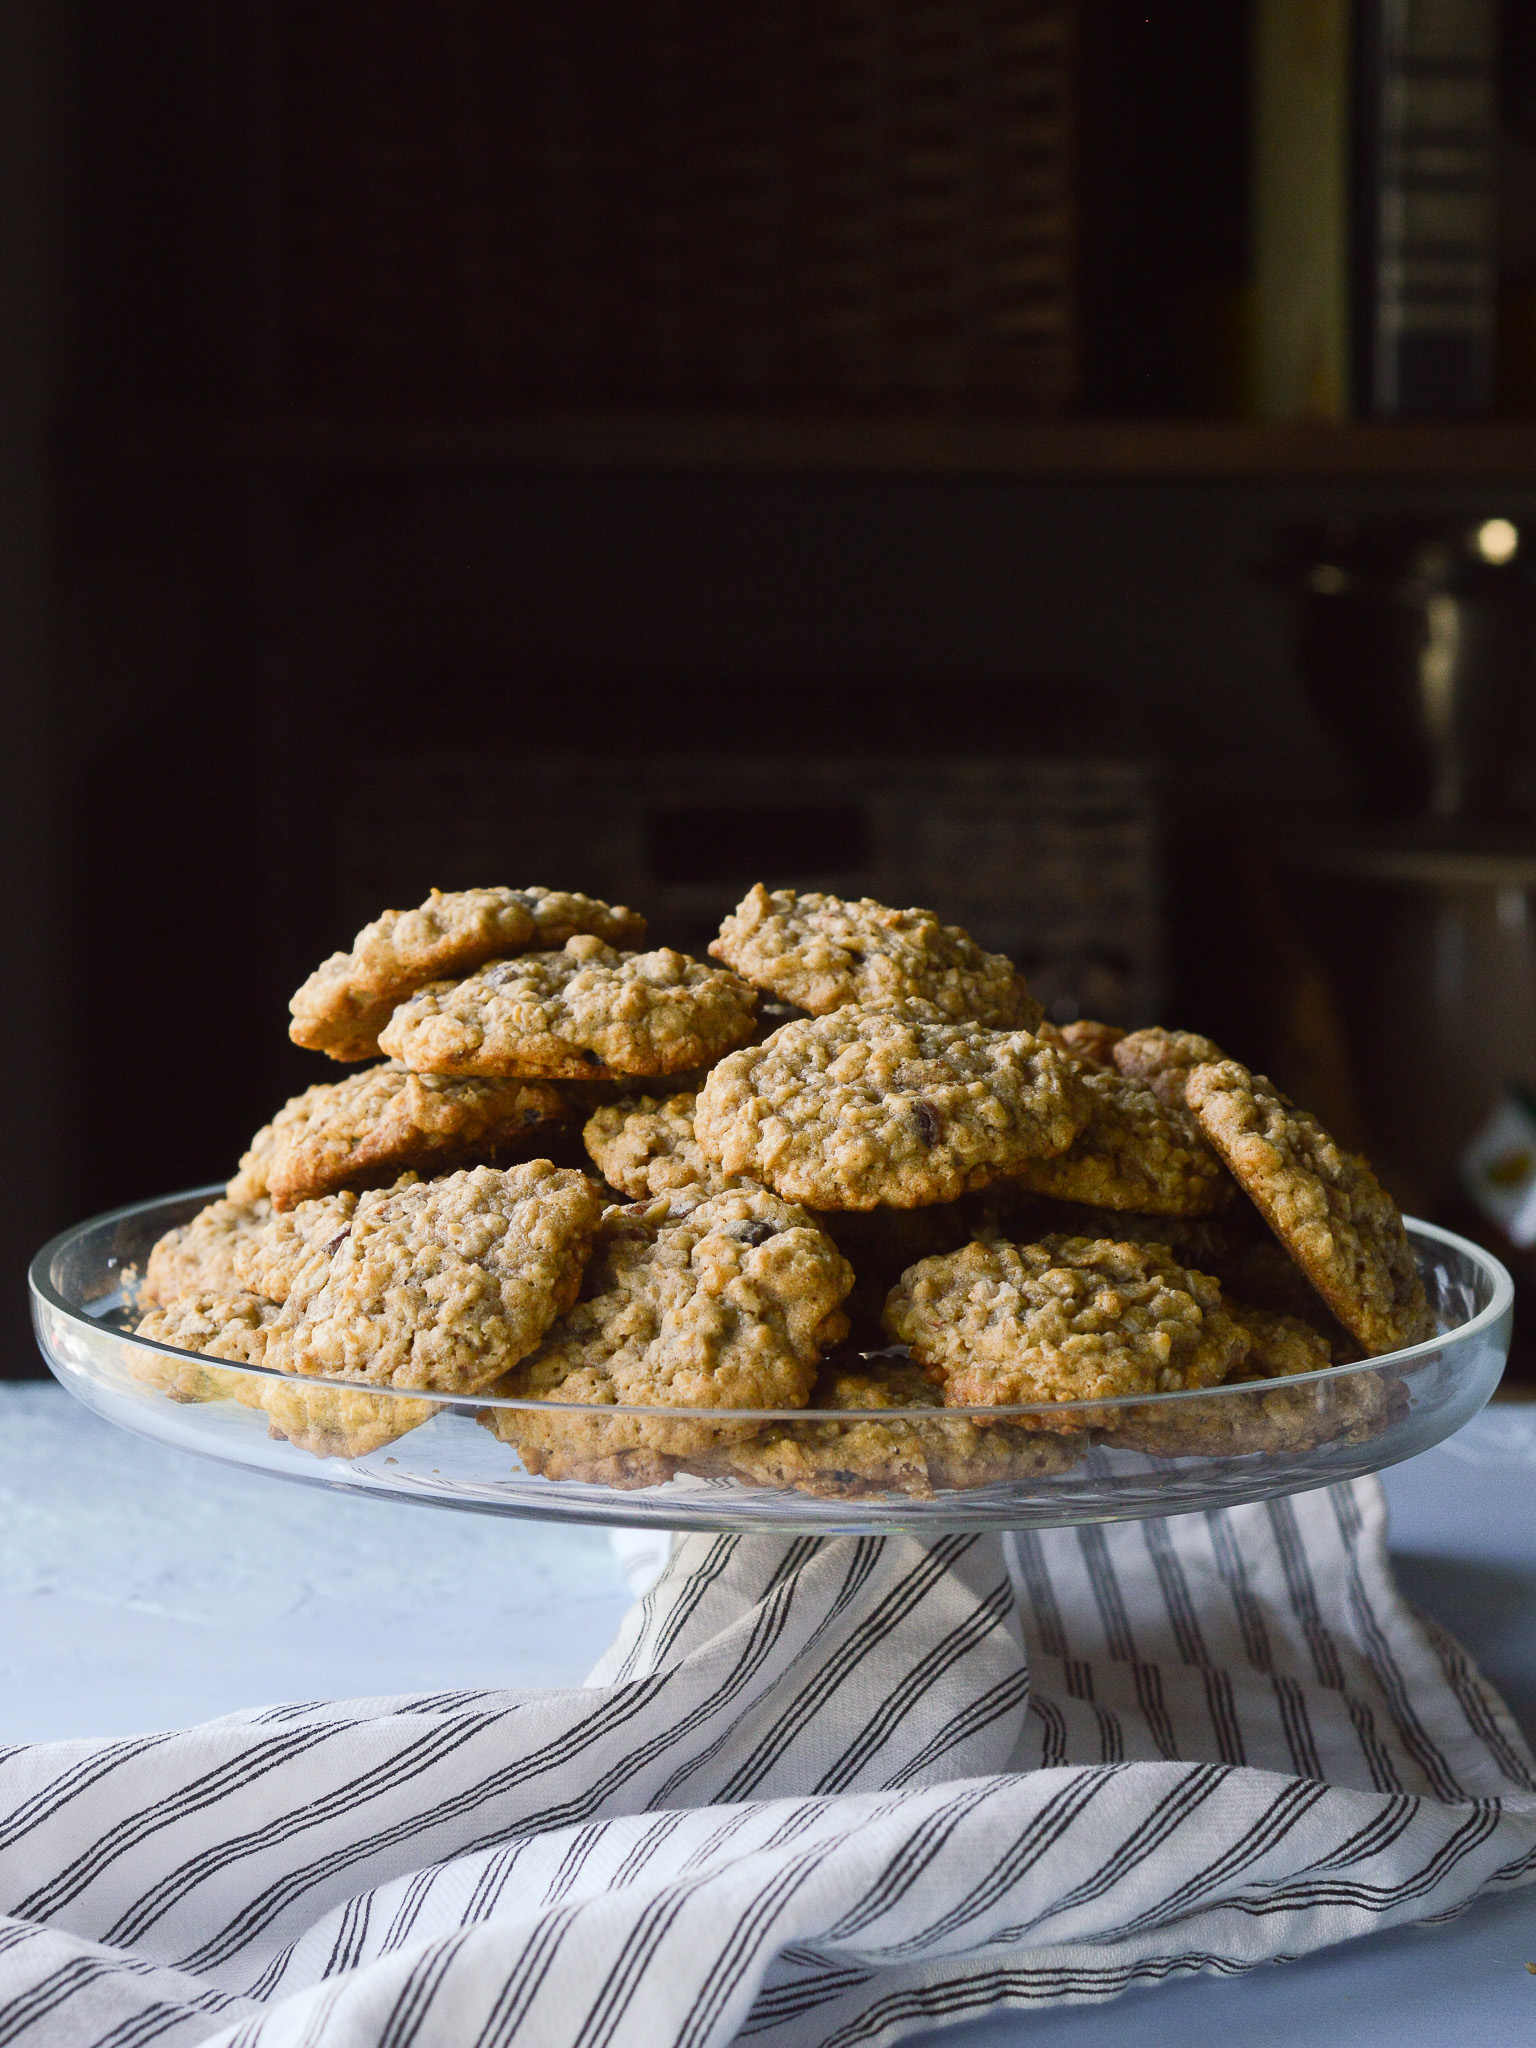 A cake stand piled high with classic oatmeal raisin cookies that are chewy with a slightly crisp edge.